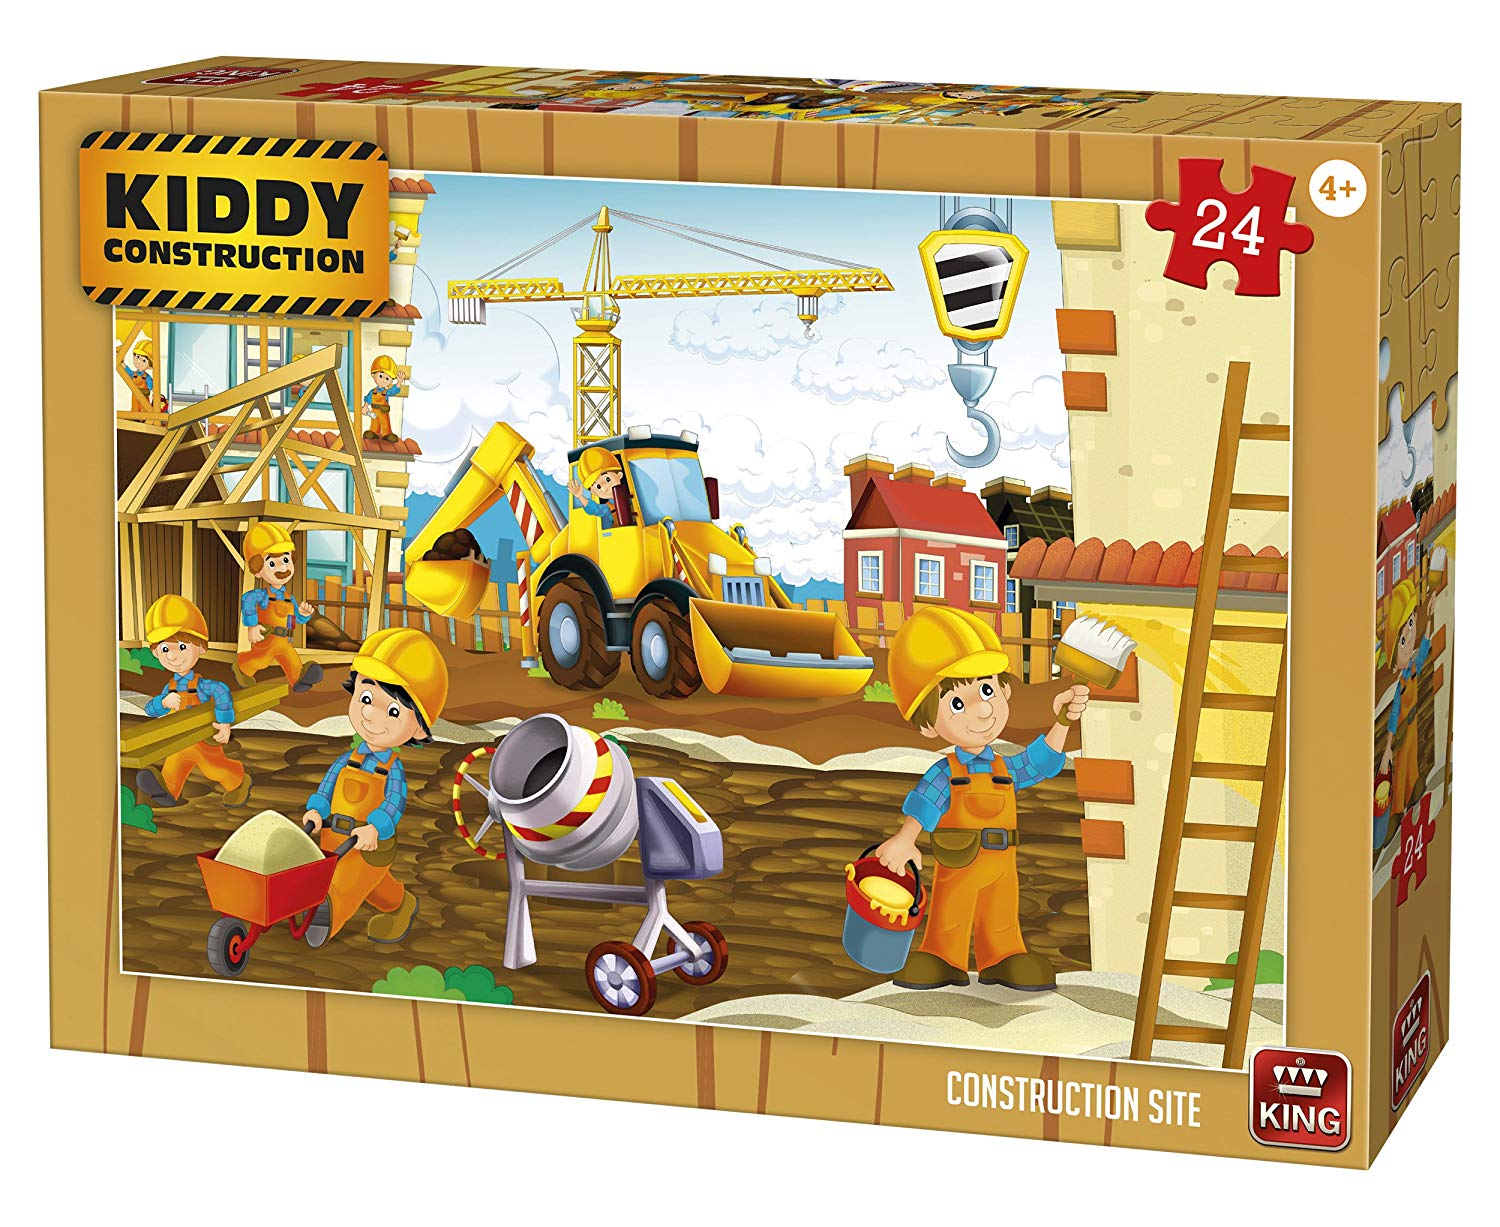 king-international-kiddy-construction-24-teile-puzzle-king-puzzle-05459